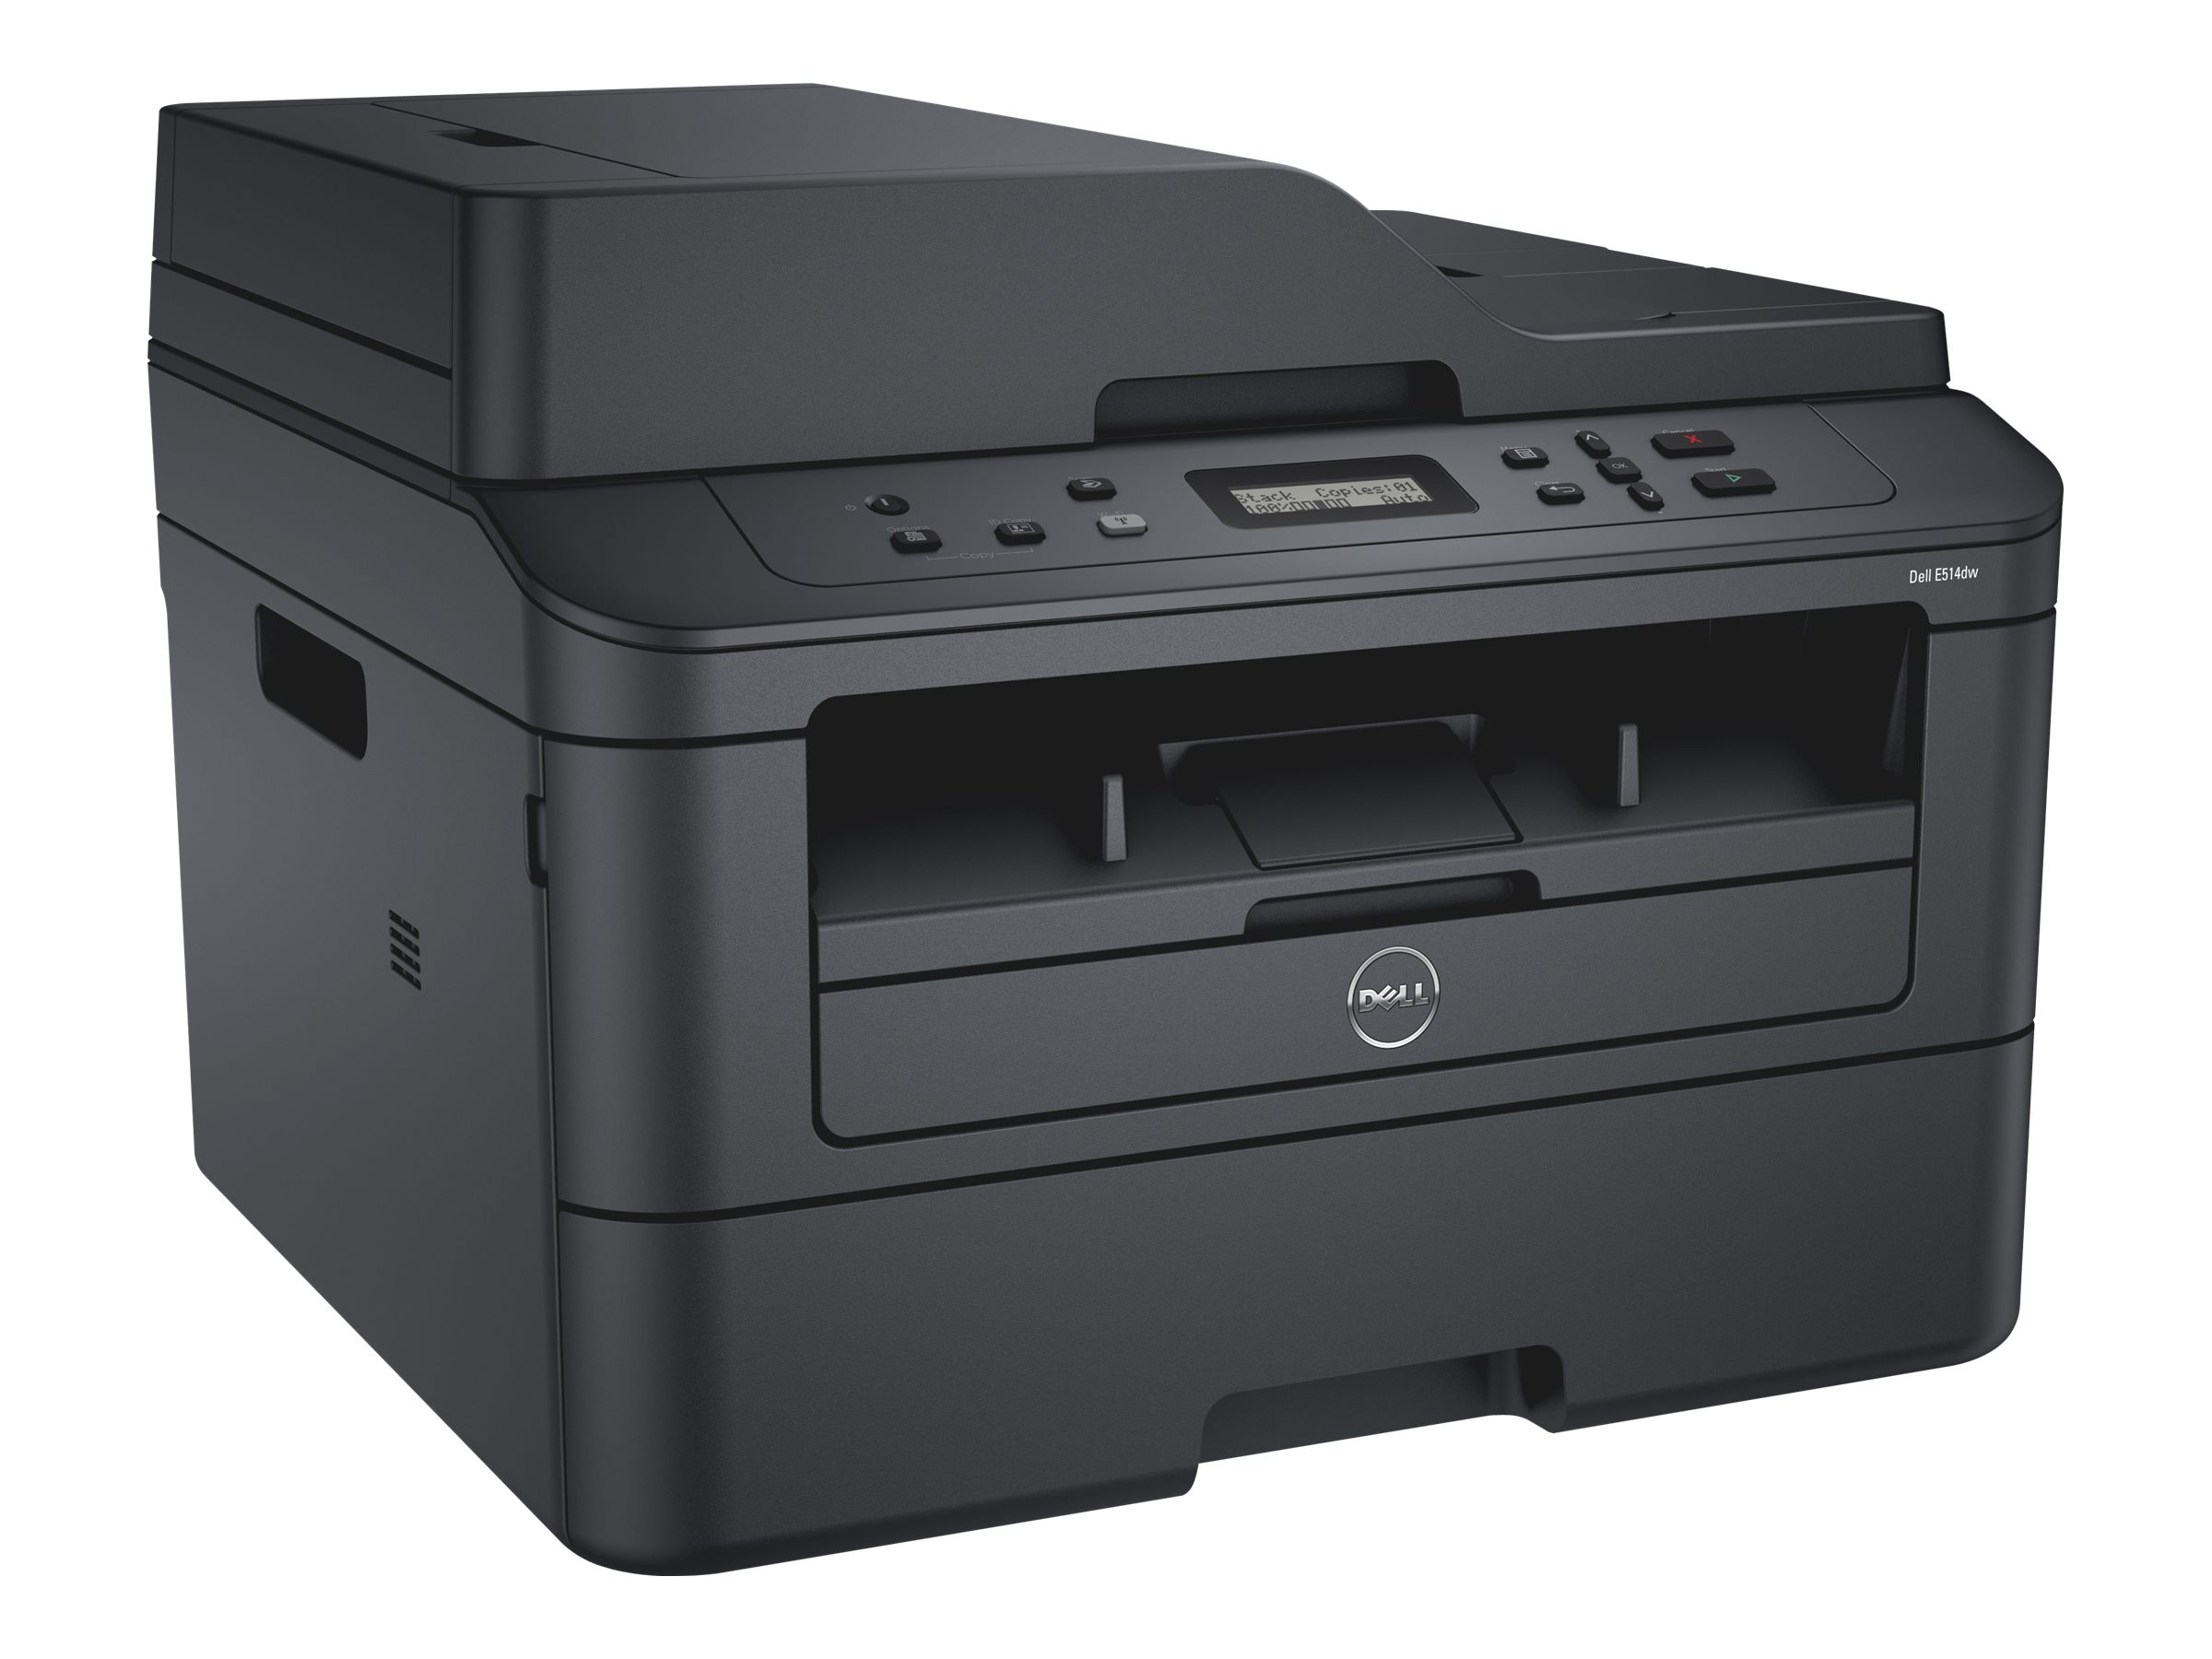 Dell E514dw Black & White Laser Multifunction Printer (210-AEHJ), E514DW